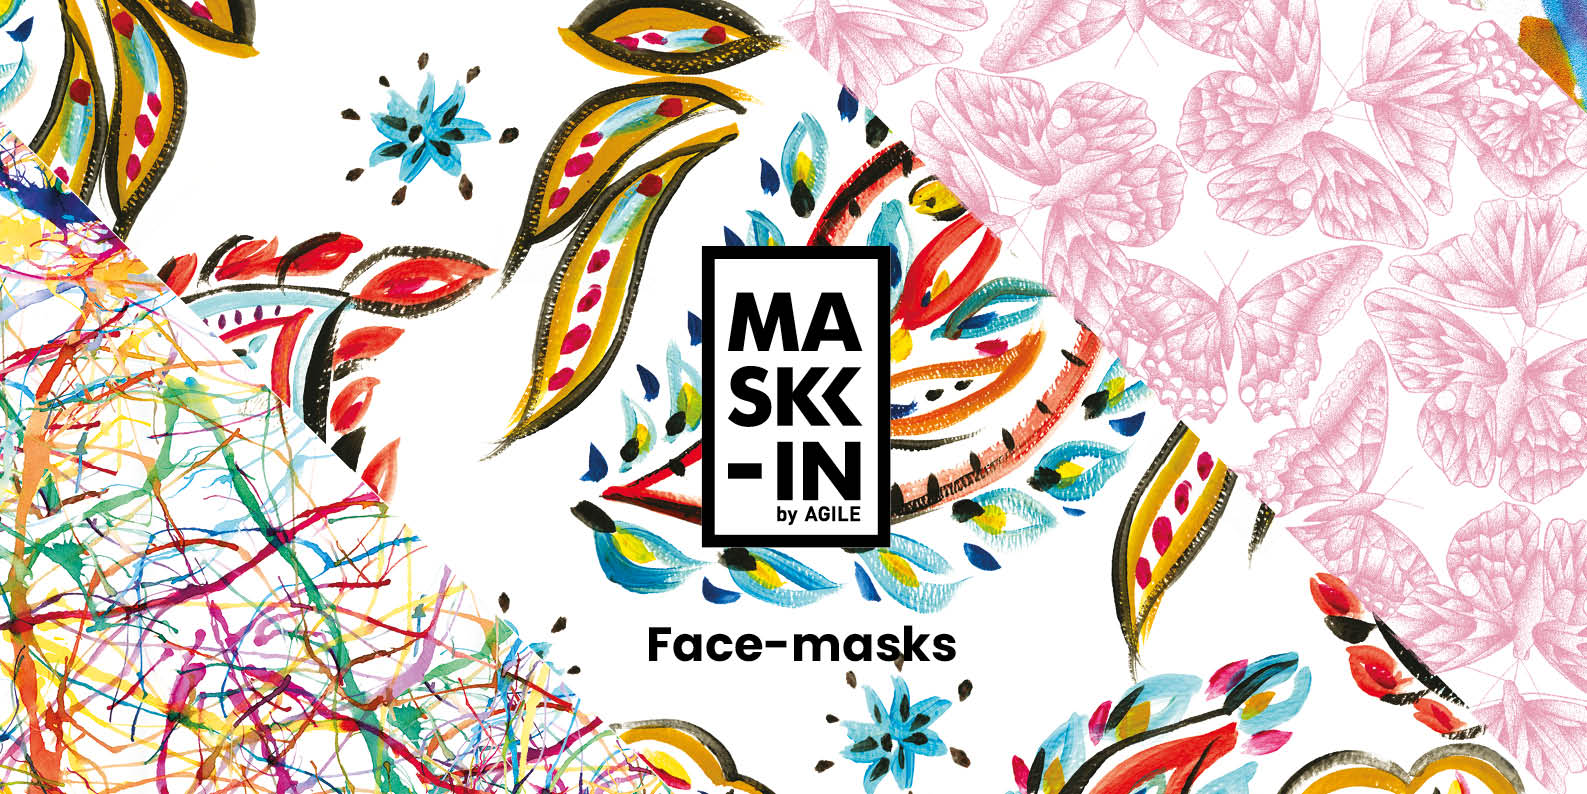 MASK-IN Face-masks Catalogue